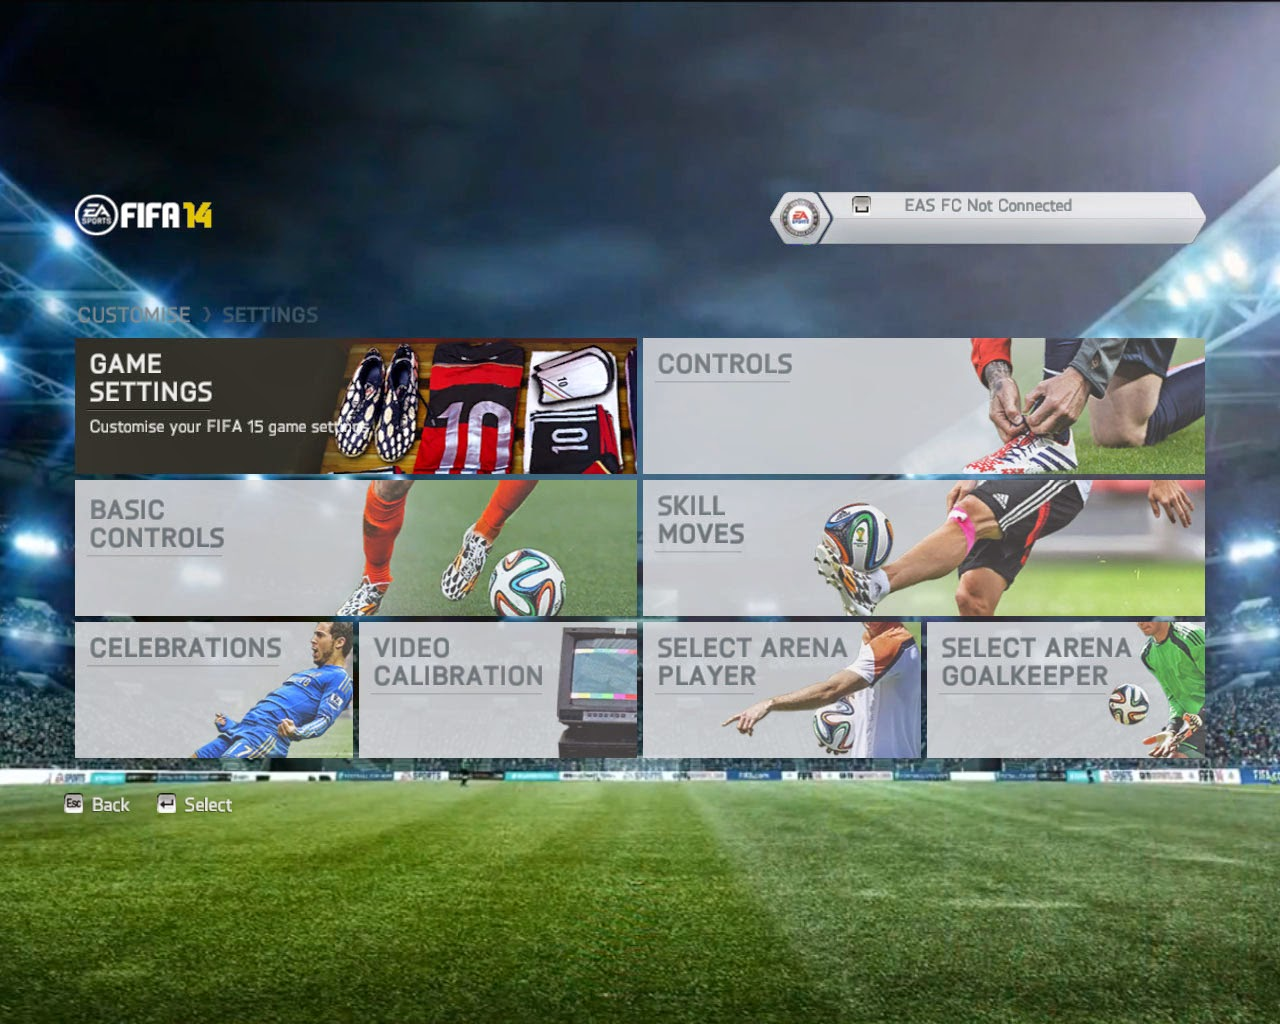 Fifa 14 Patch 9 0